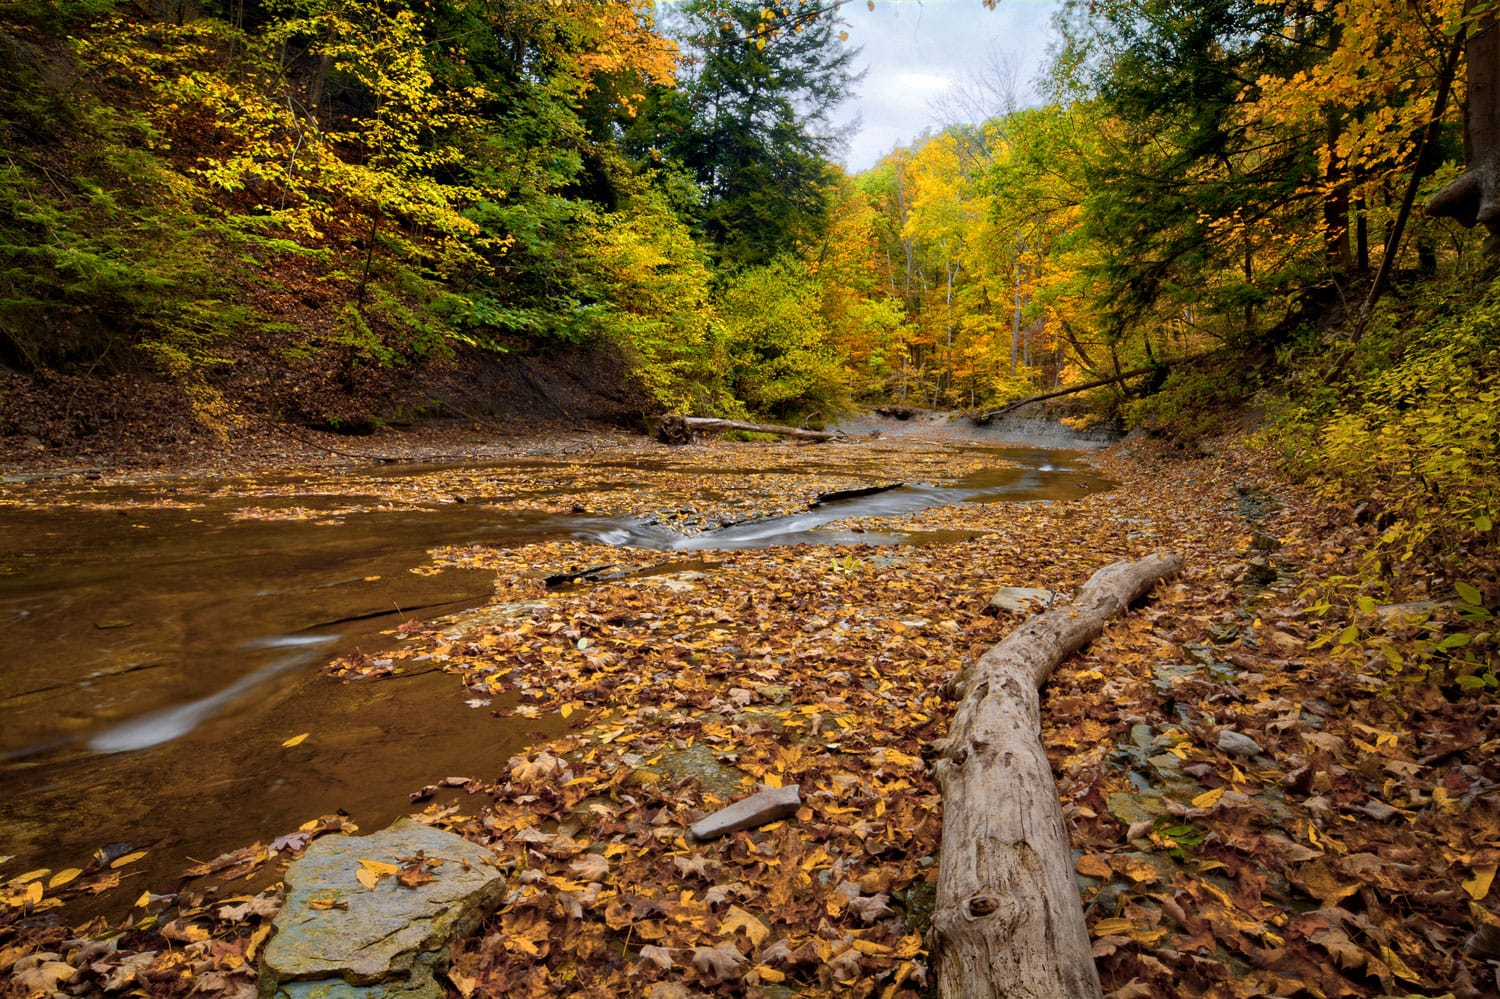 A scenic view along Brandywine Creek in Cuyahoga Valley National Park Ohio.